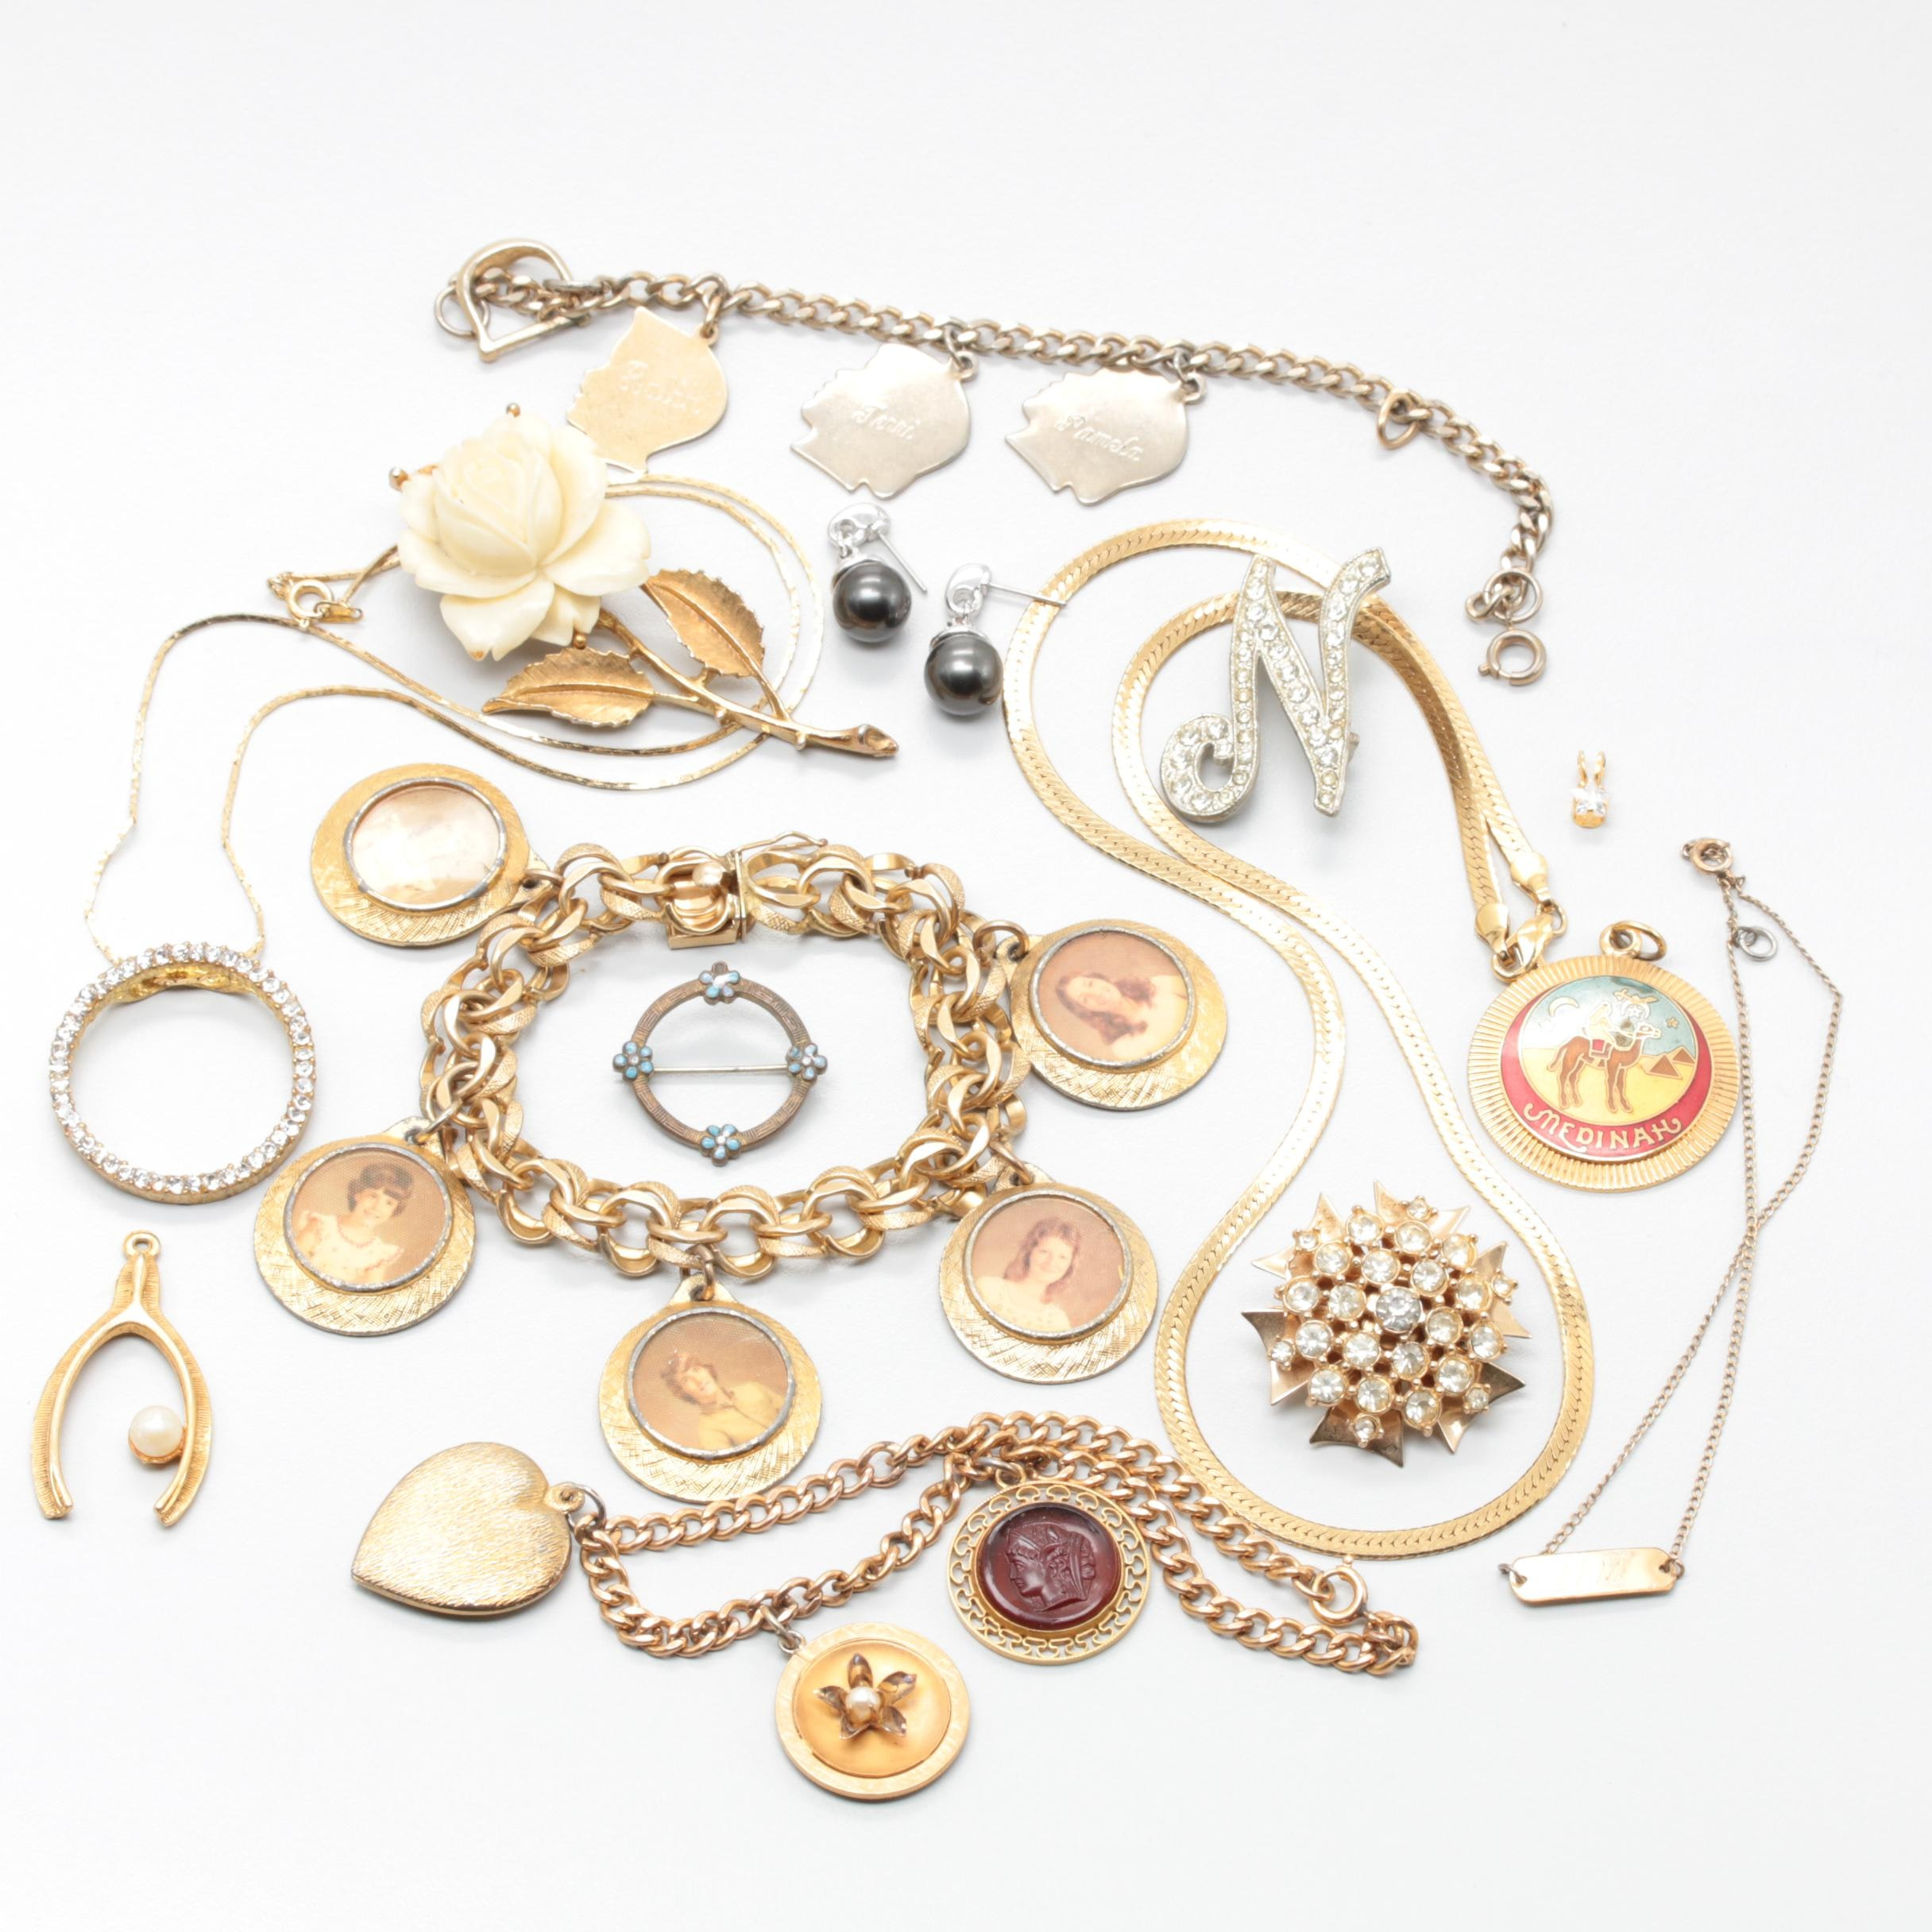 Gold Tone Jewelry Assortment Including Foilbacks, Enamel, and Plastic